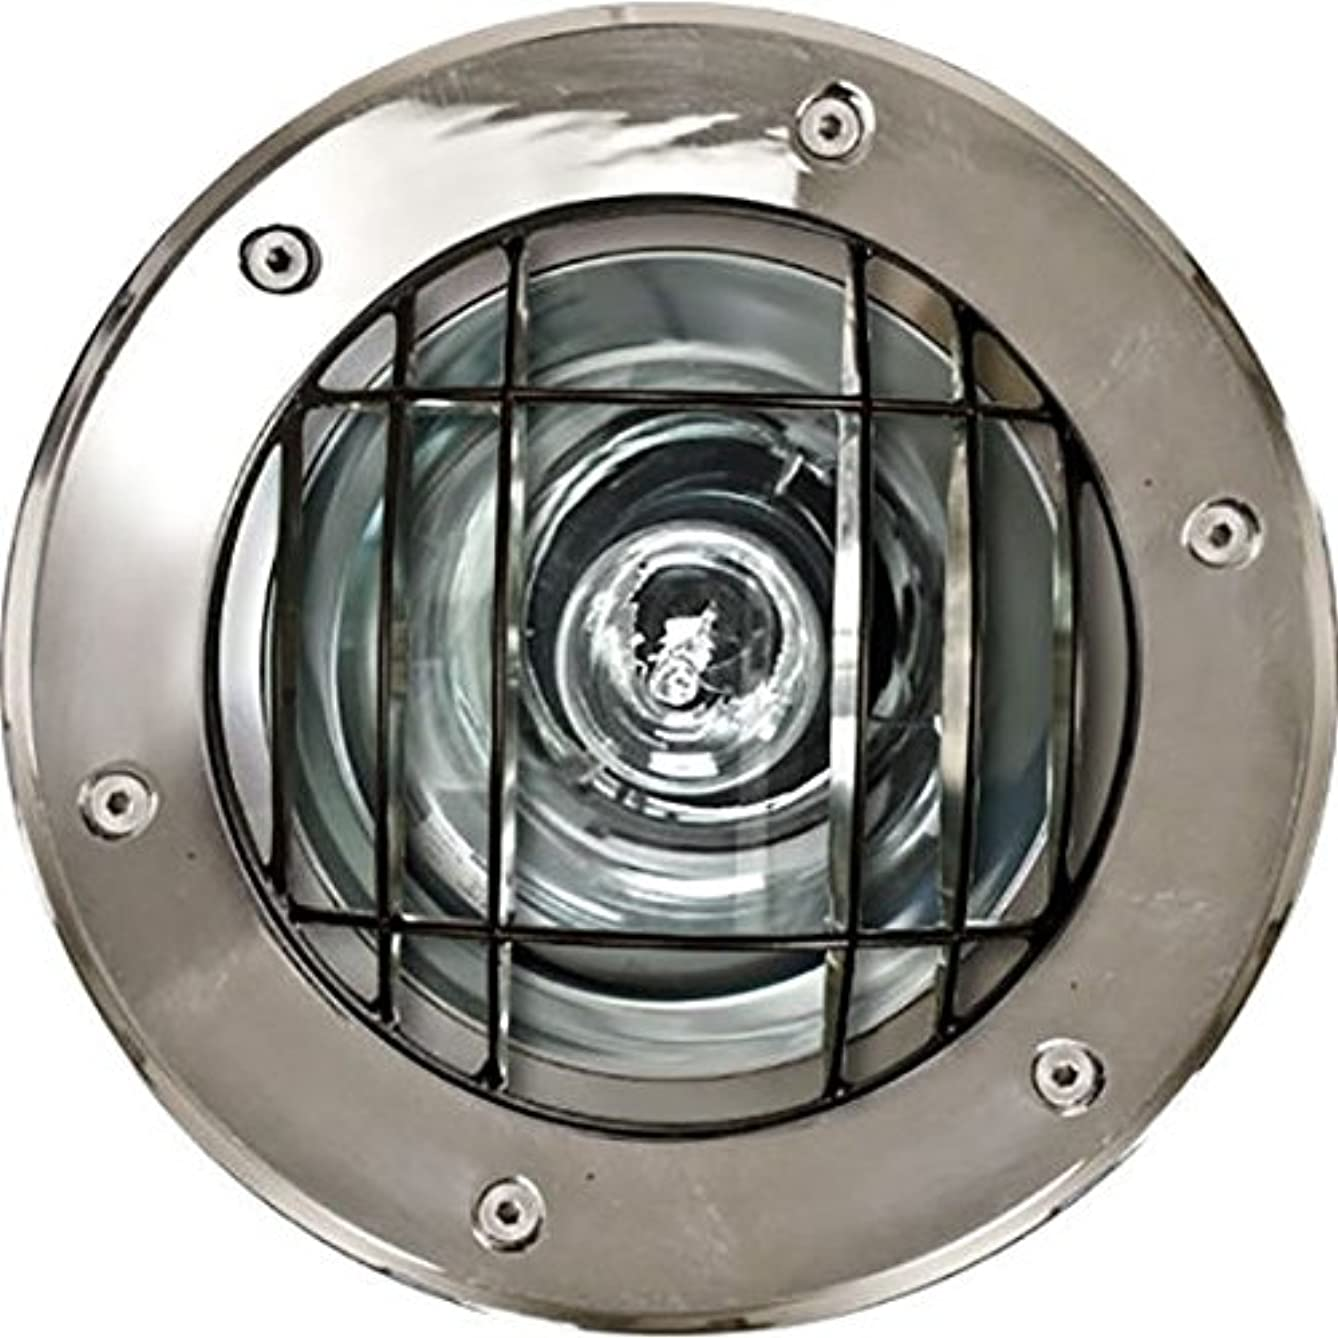 1 Light In-Ground Well Light with Grill Lamp: 50W HPS